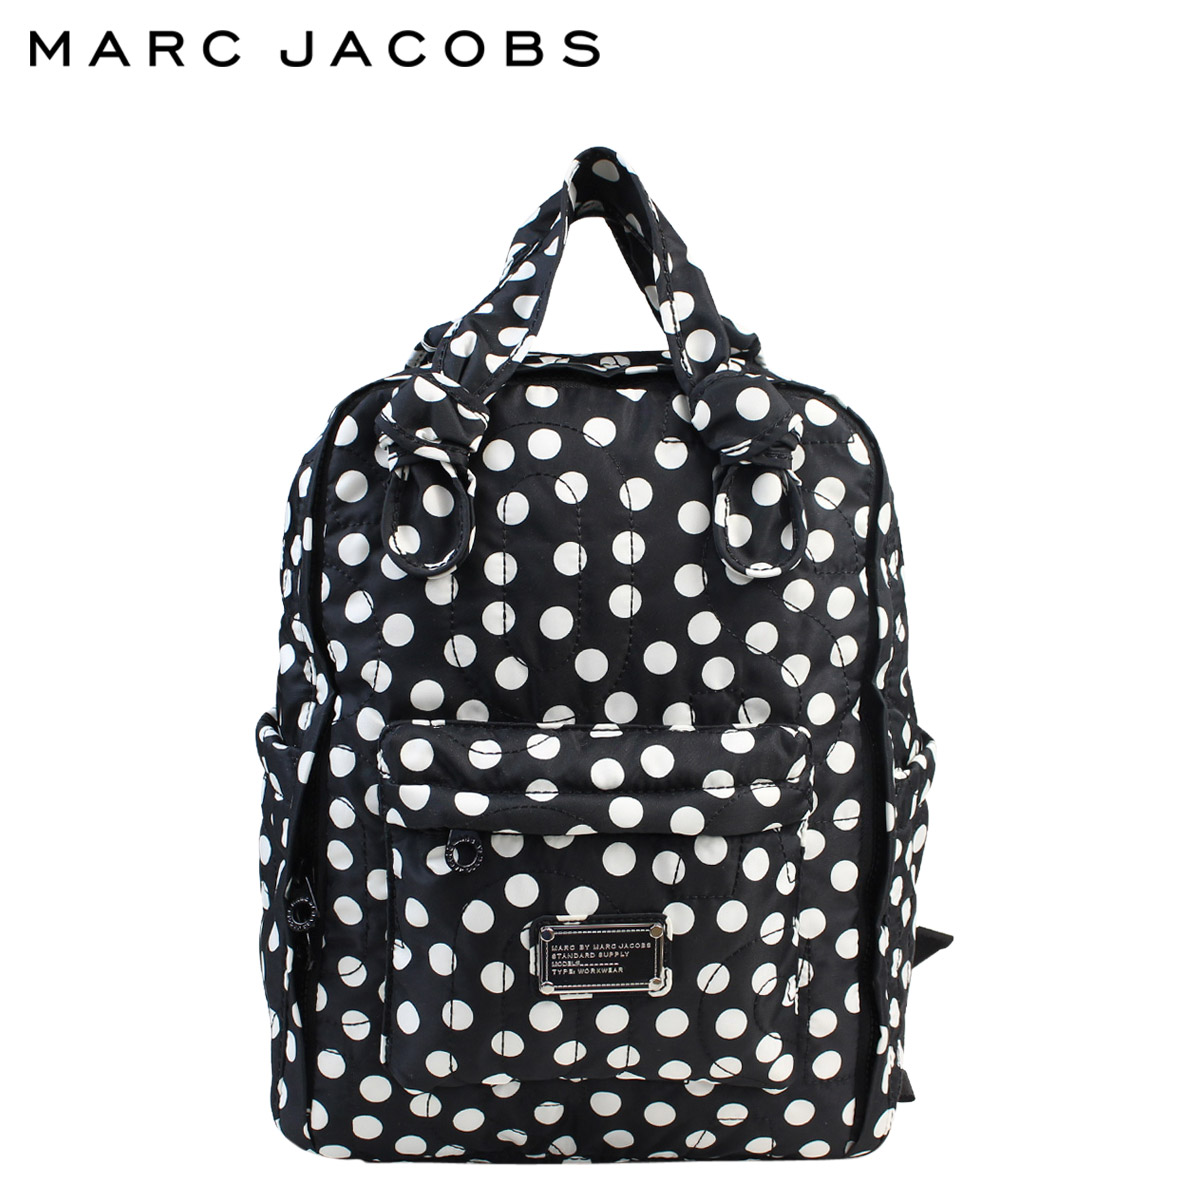 1f6540c9cb10 Mark by mark Jacobs rucksack MARC BY MARC JACOBS backpack A4 2WAY M0009440  PRETTY NYLON KNAPSACK Lady s  3 14 Shinnyu load